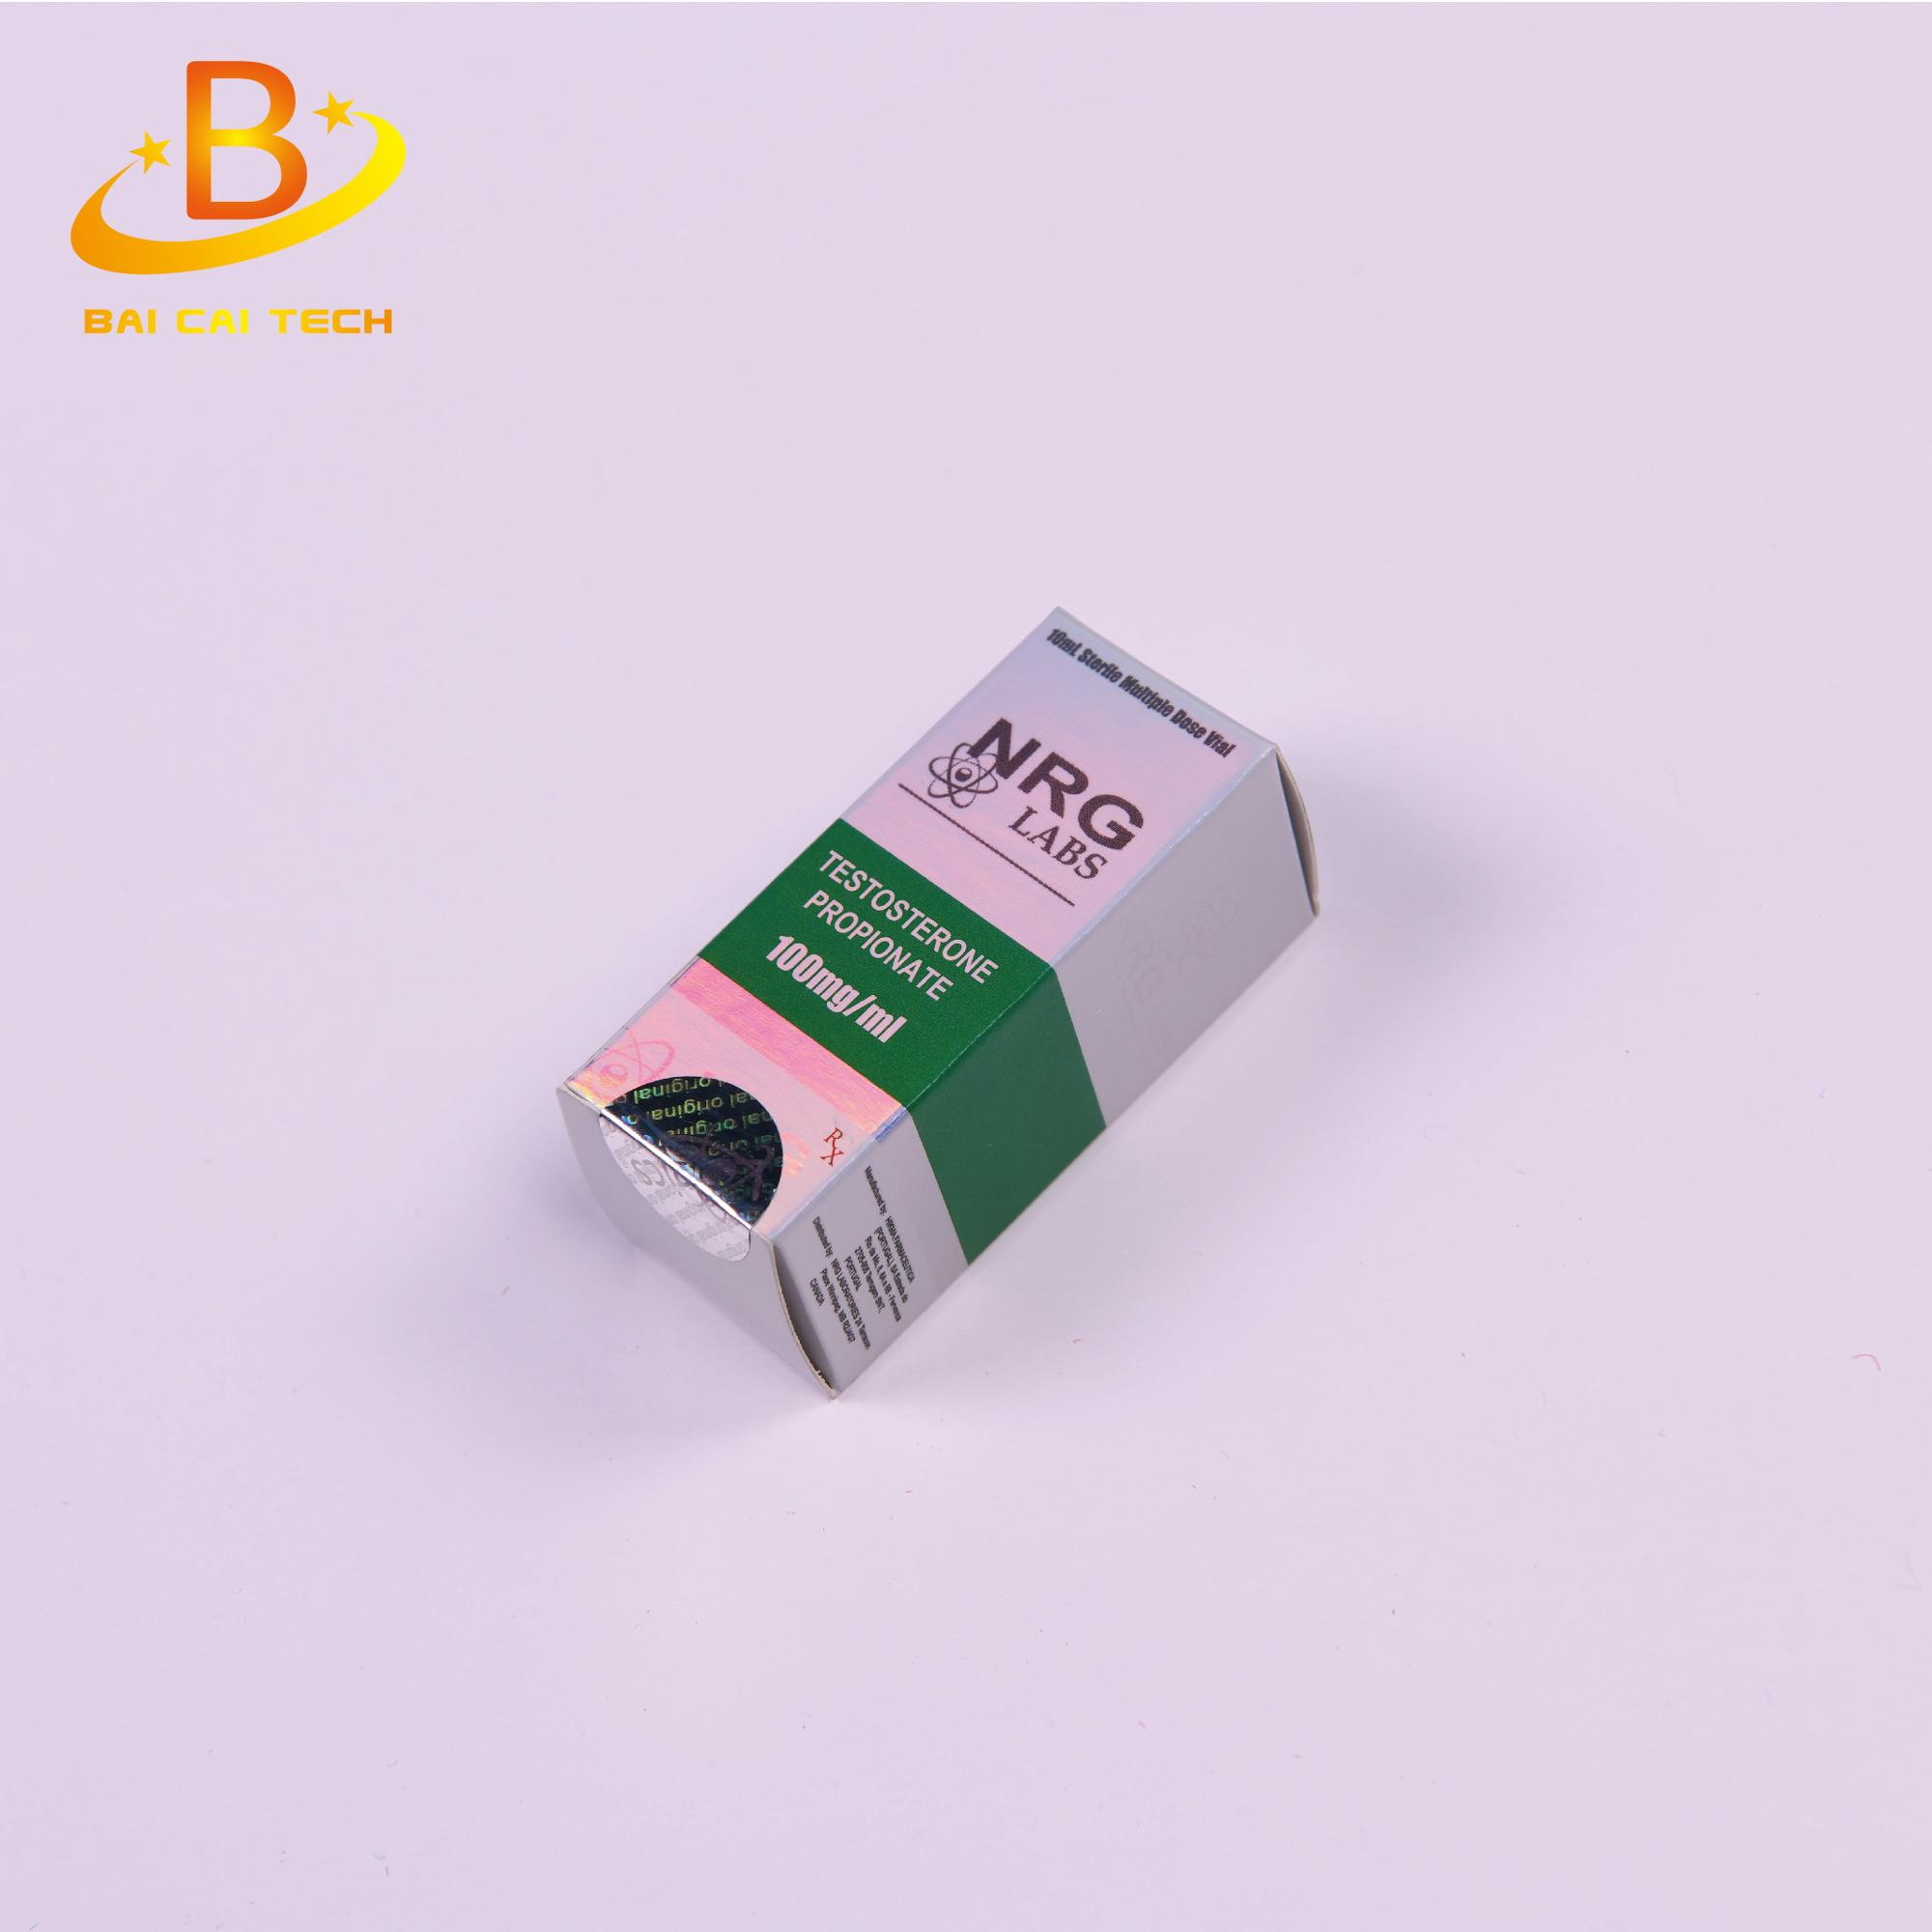 Recycling free design pharmaceutical vial box hologram 10ml vial box